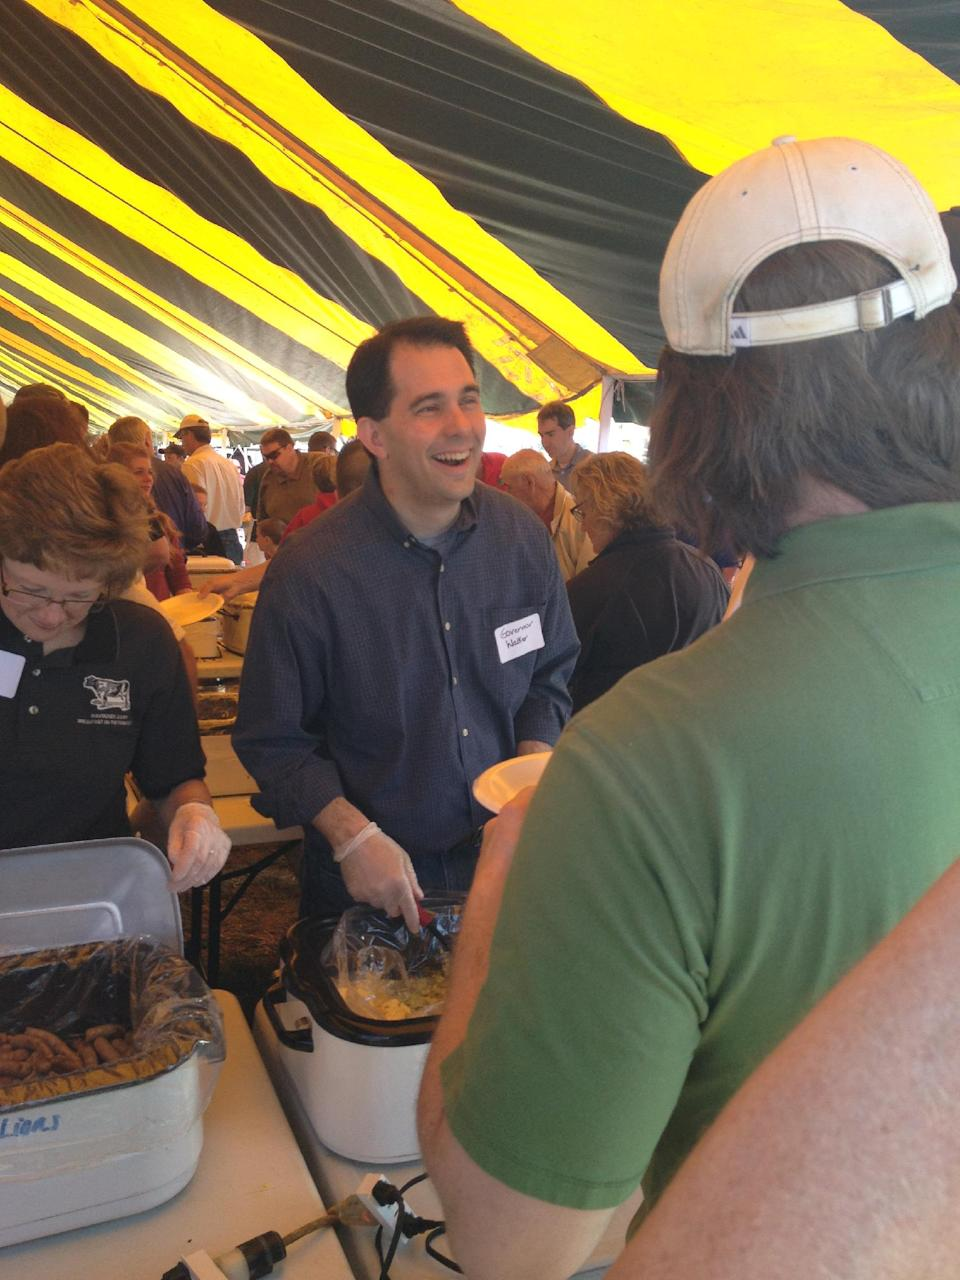 Republican Gov. Scott Walker, who will try to defend his seat from Democratic challenger Tom Barrett  in Wisconsin's recall election Tuesday, serves eggs at a dairy breakfast in the Town of Rockland, Wis., on Sunday, June 3, 2012. (AP Photo/Roger Schneider)